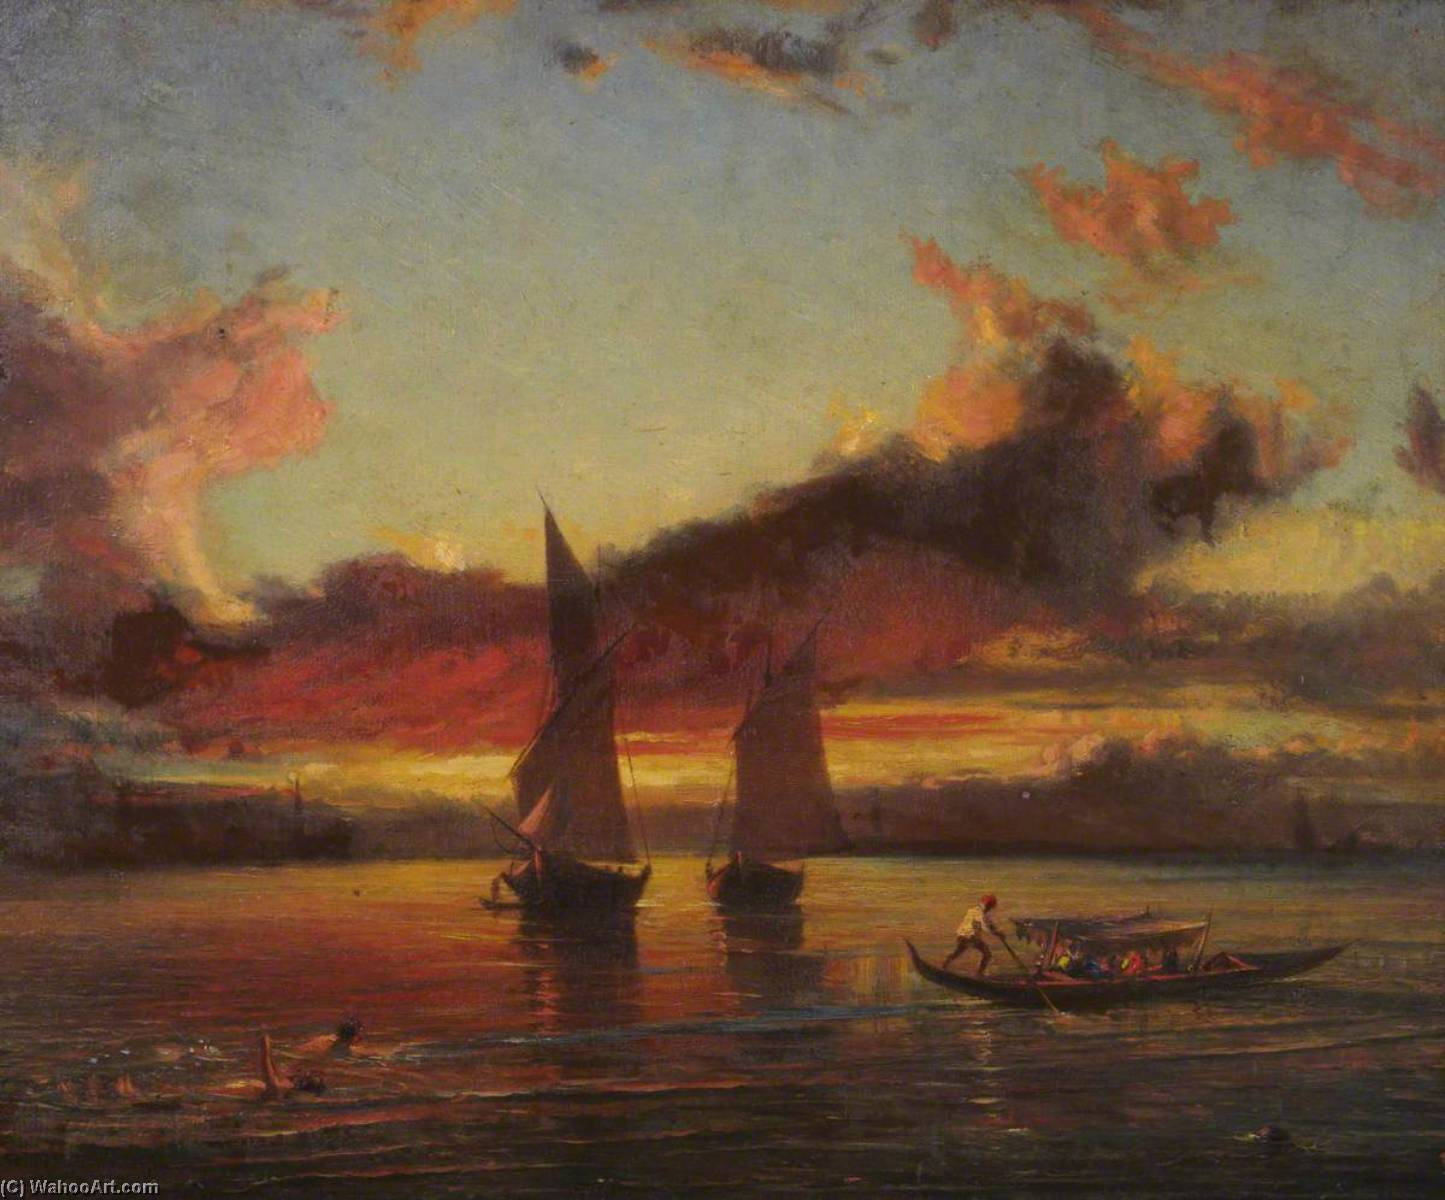 Order Painting Copy : Sunset on the Lagoon by Thomas Stuart Smith | WahooArt.com